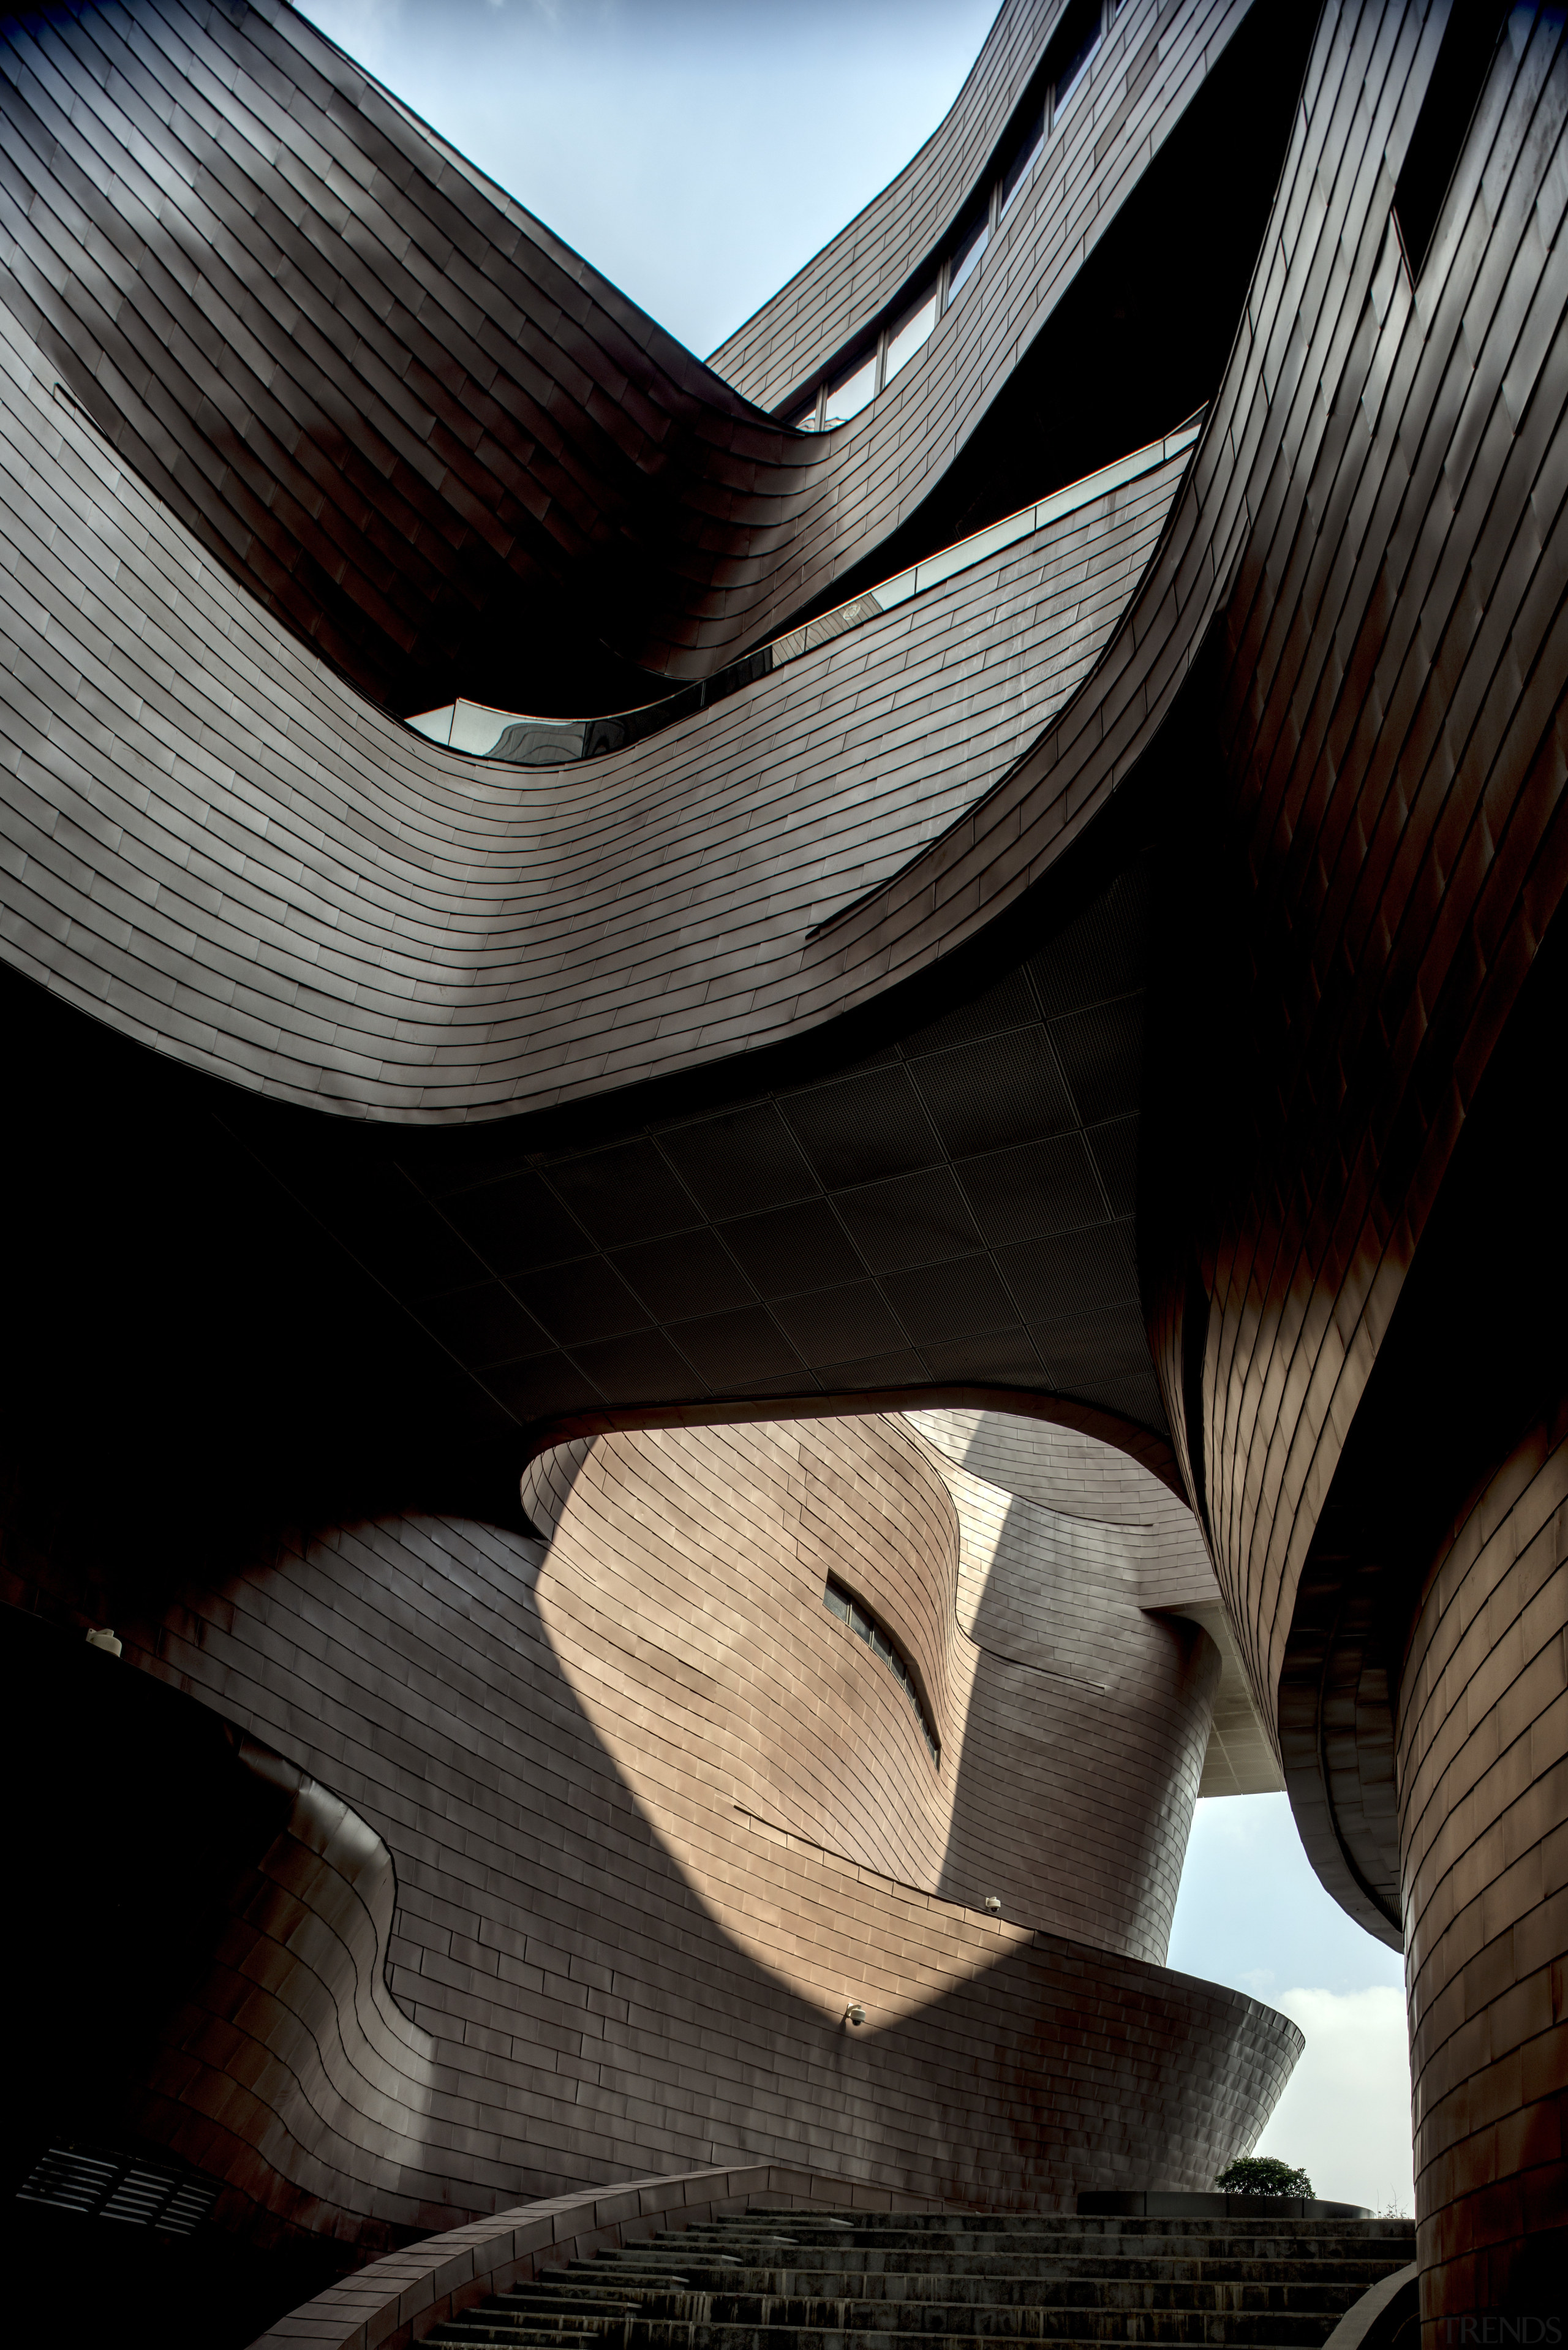 A view up past the podium level of architecture, design, line, black